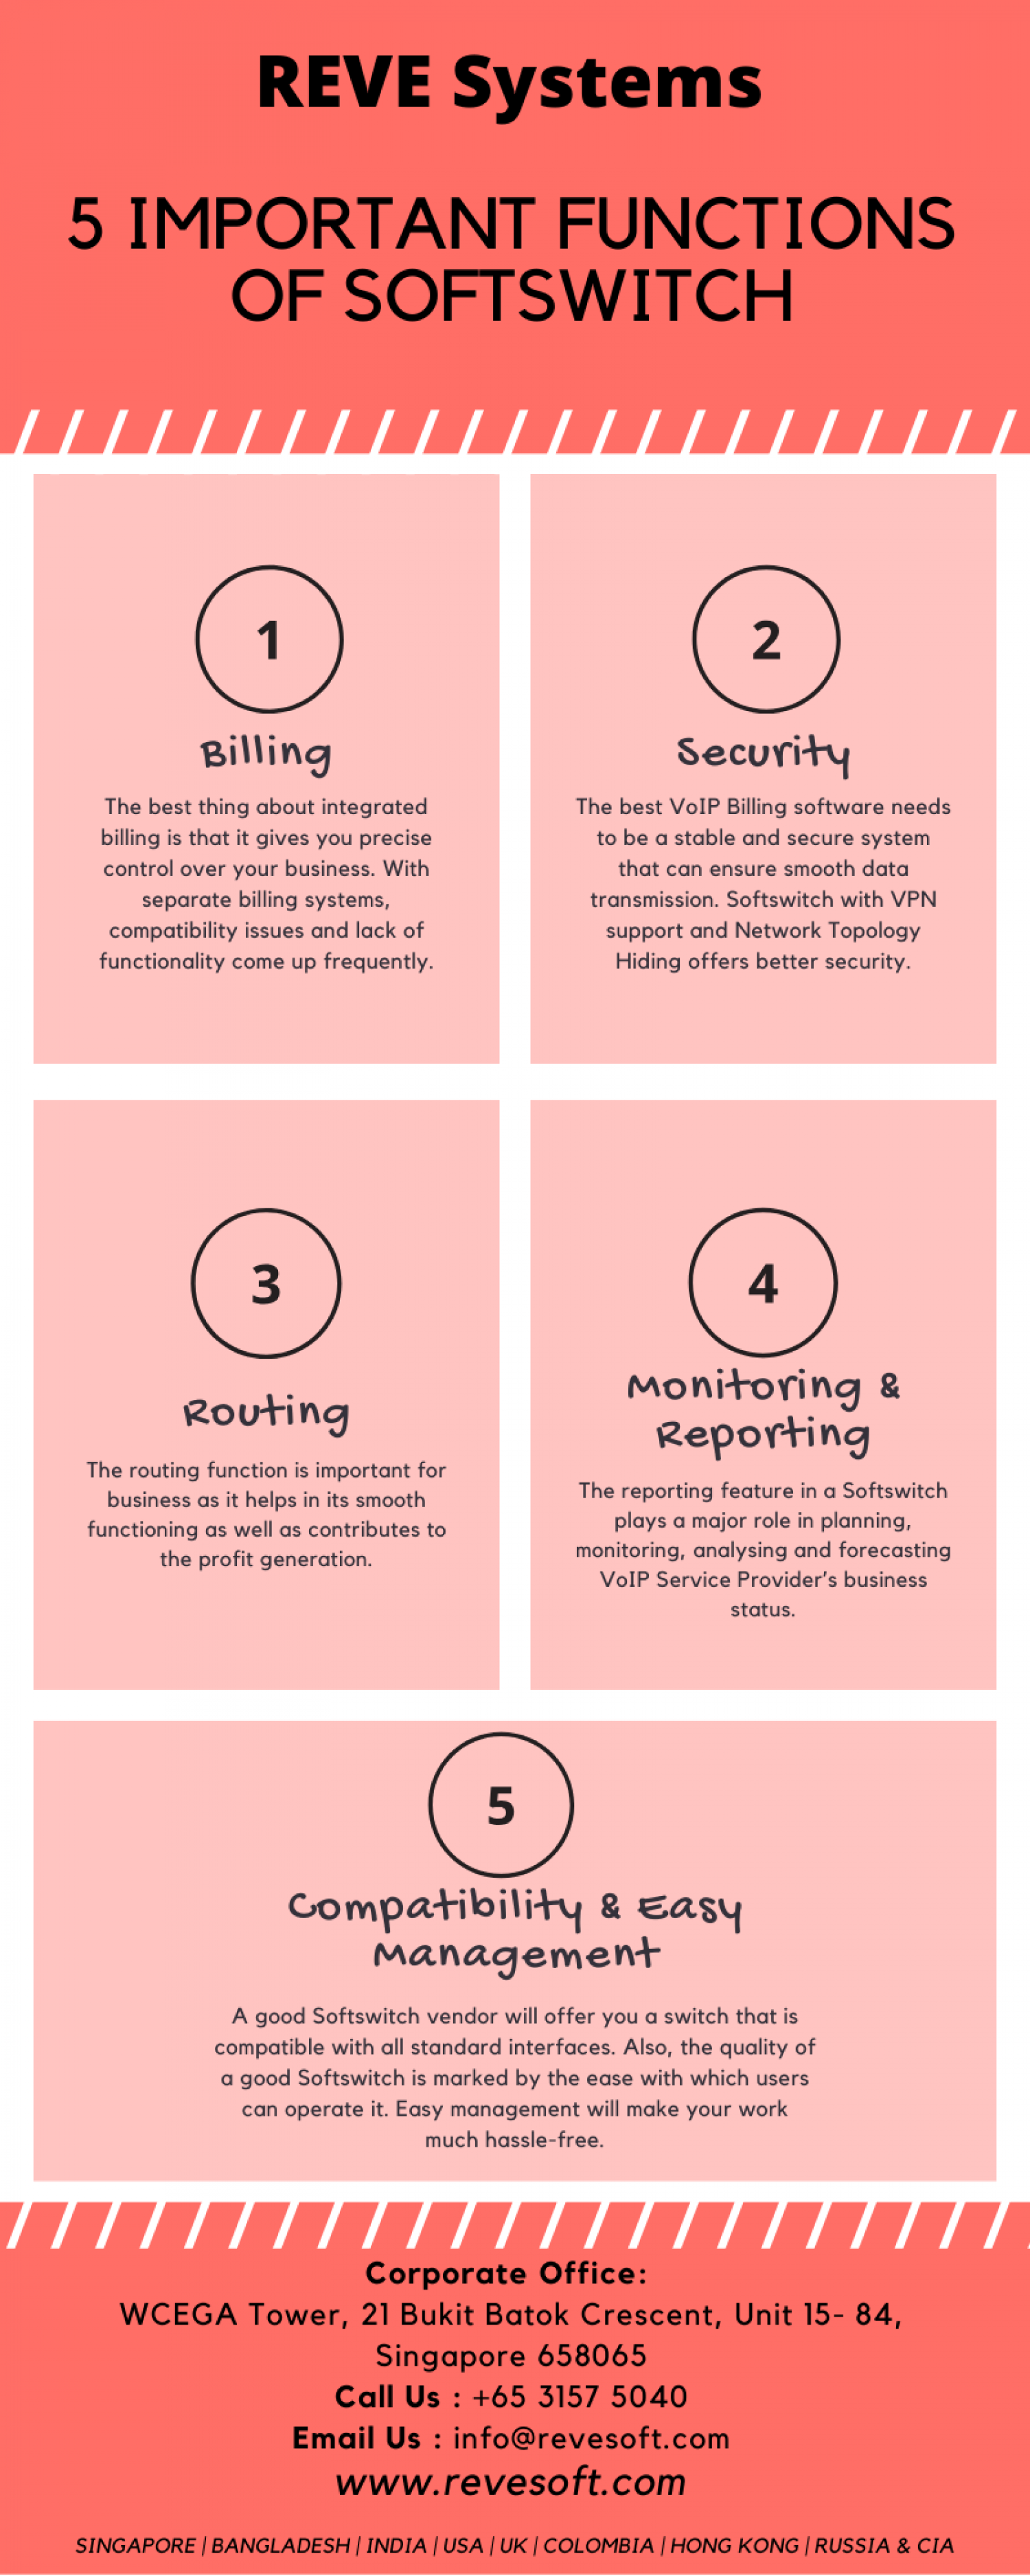 5 Important Functions of Softswitch   REVE Systems Infographic